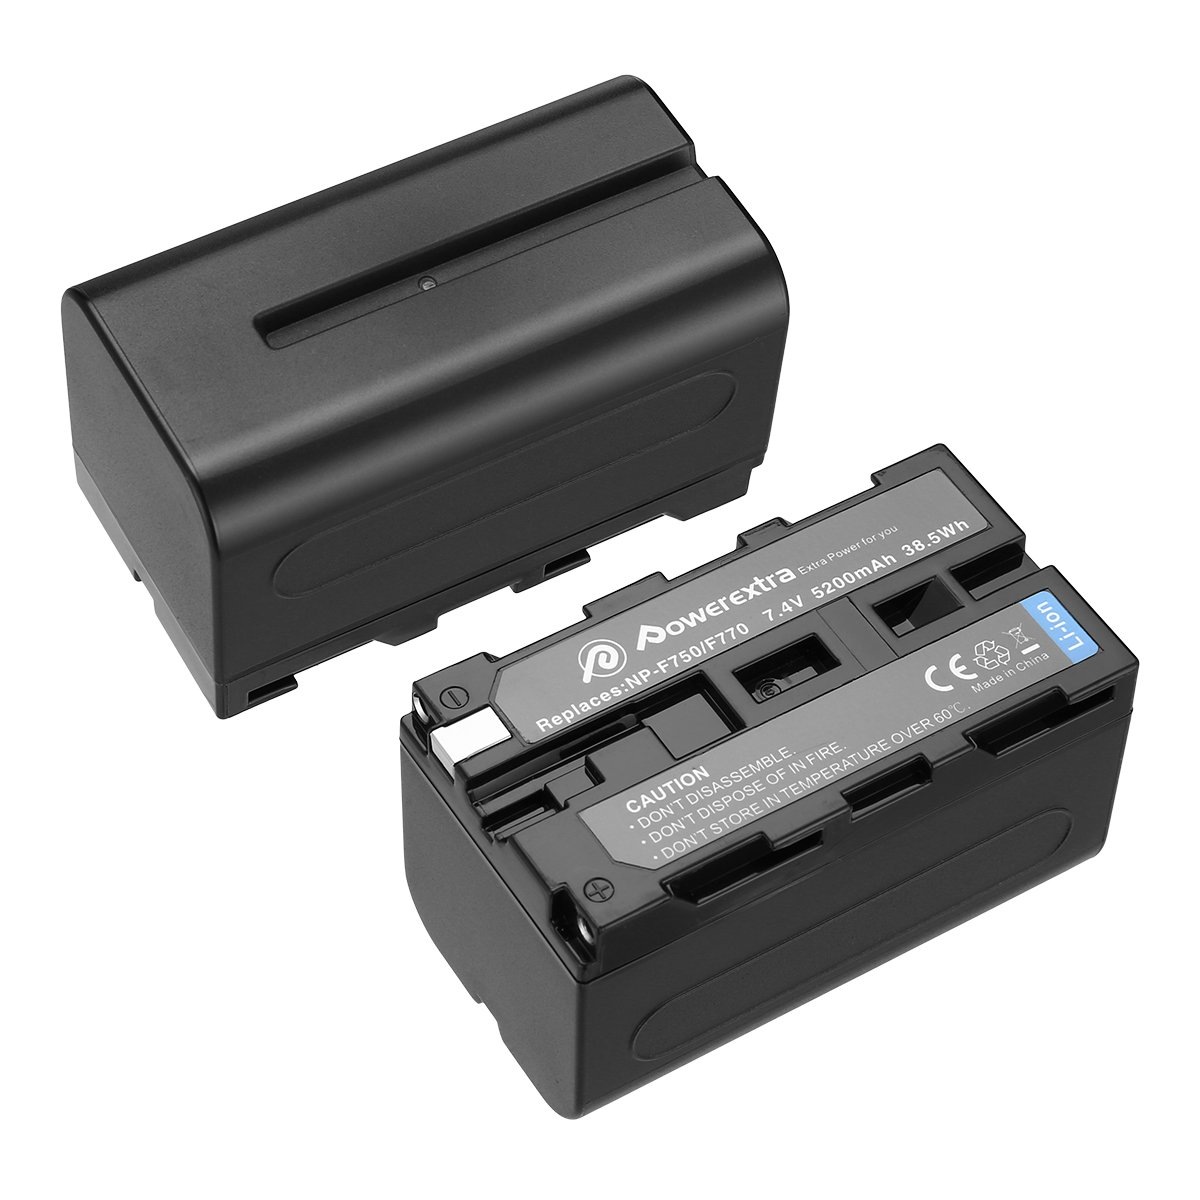 Powerextra 2 Pack Replacement Sony NP-F750 Battery for Sony NP-F730, NP-F750, NP-F760, NP-F770 Battery and Sony CCD-TRV215 CCD-TR917 CCD-TR315 HDR-FX1000 HDR-FX7 HVR-V1U HVR-Z7U HVR-Z5U Camcorder by Powerextra